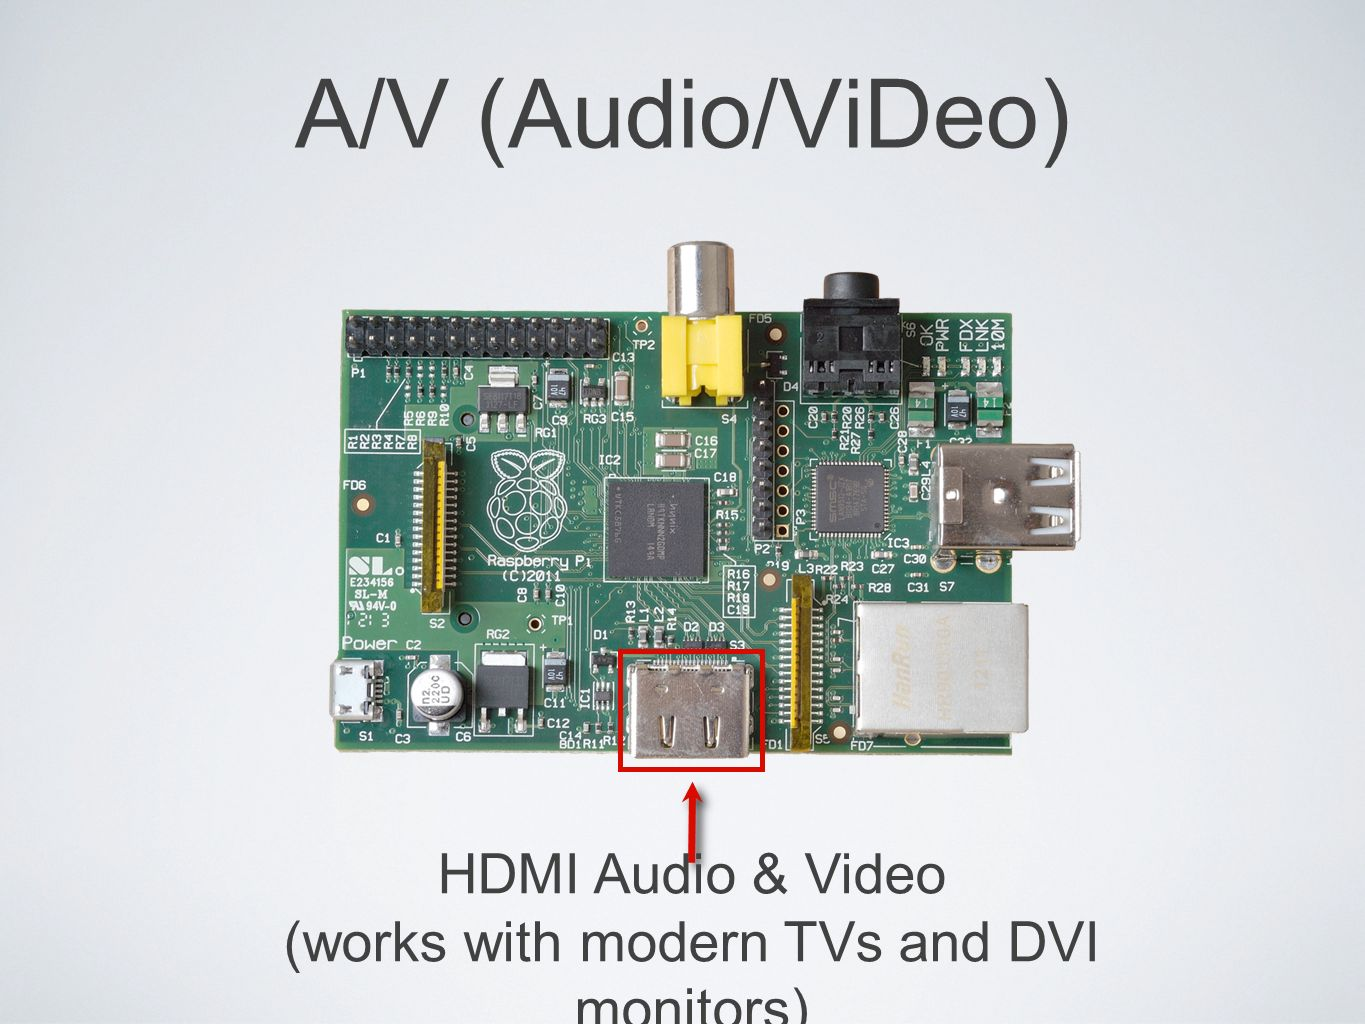 A/V (Audio/ViDeo) HDMI Audio & Video (works with modern TVs and DVI monitors)